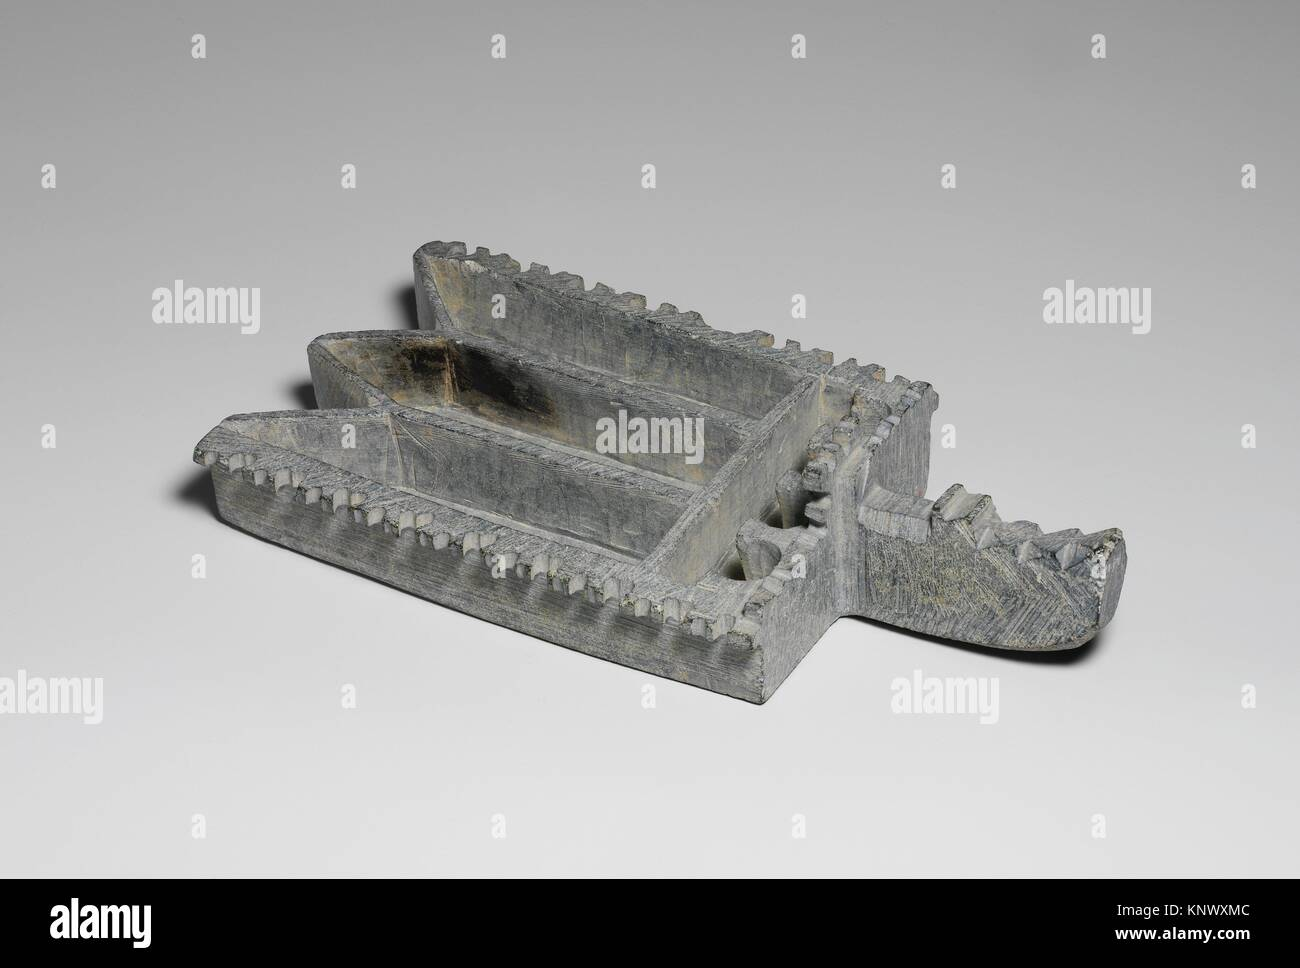 Stone Oil Lamp. Object Name: Lamp; Date: 9th century; Geography: Excavated in Iran, Nishapur; Medium: Steatite; - Stock Image